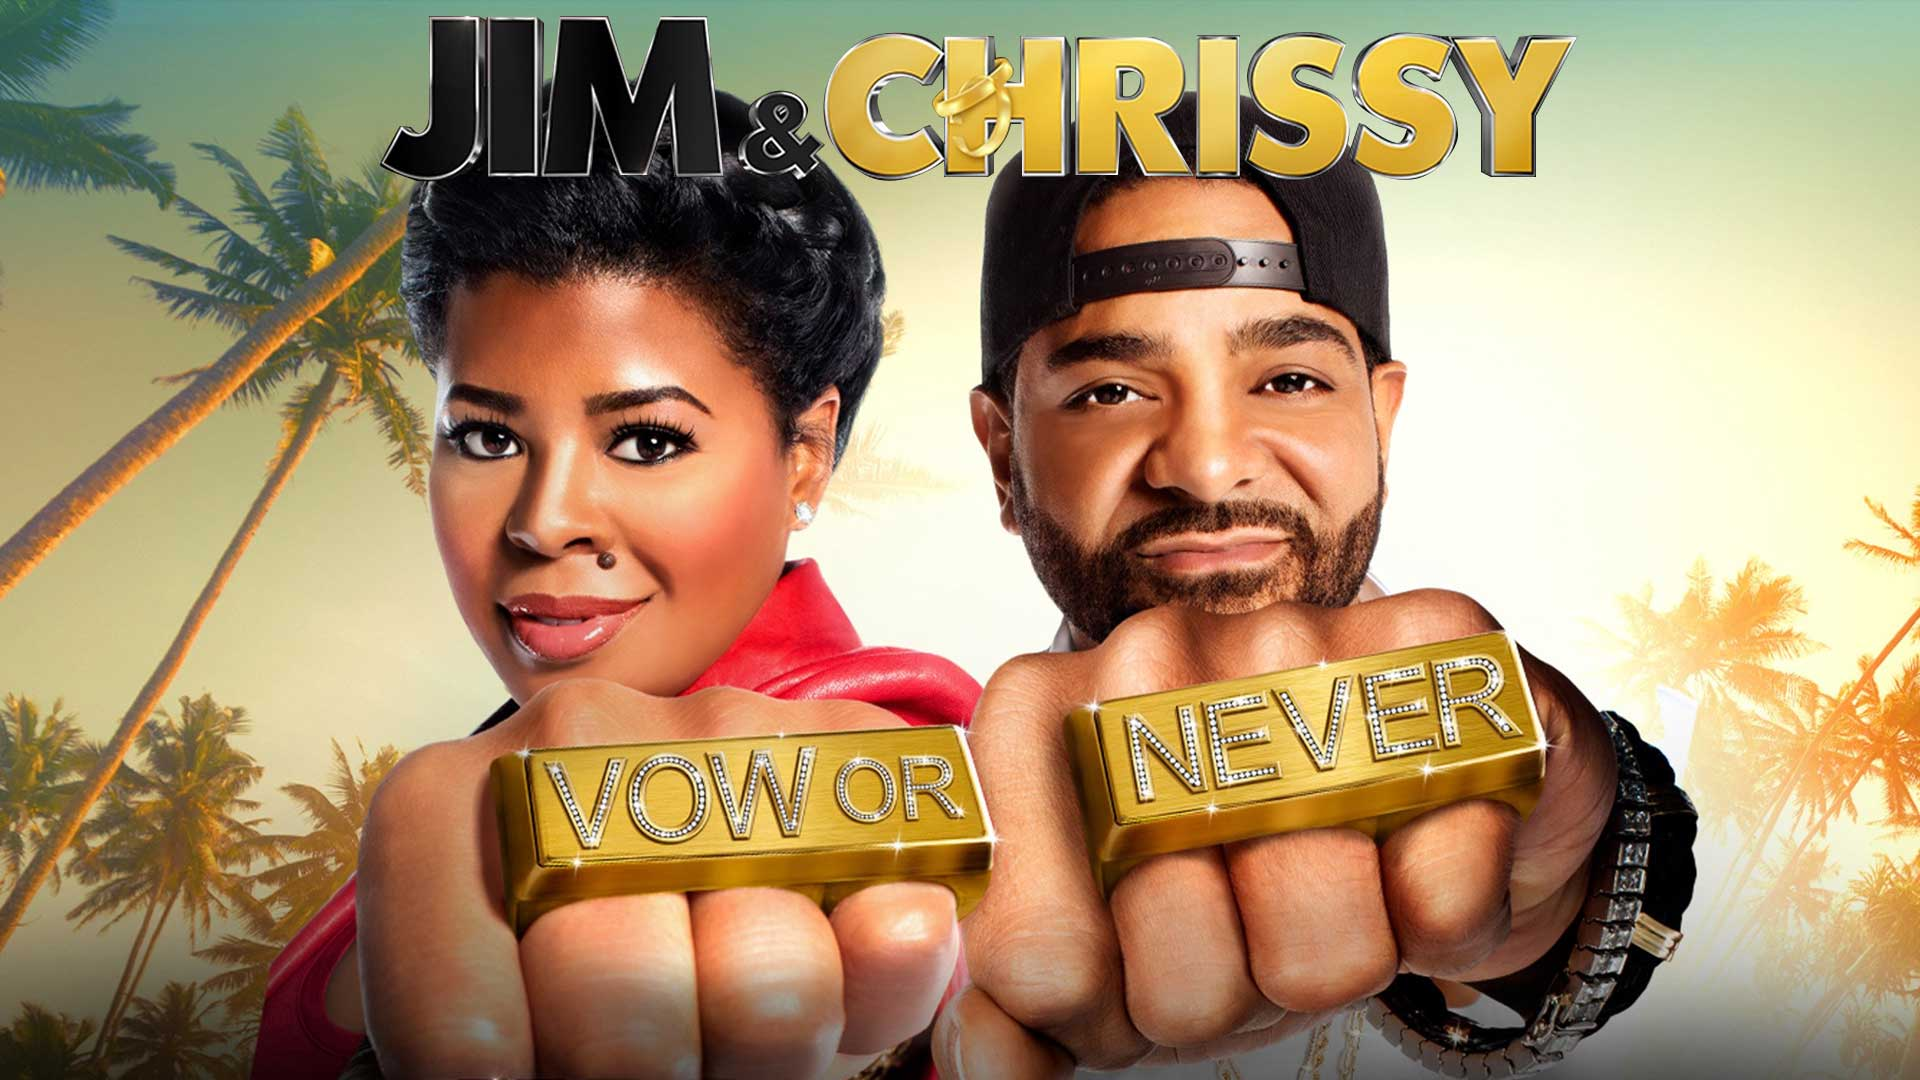 Jim & Chrissy: Vow or Never Season 1